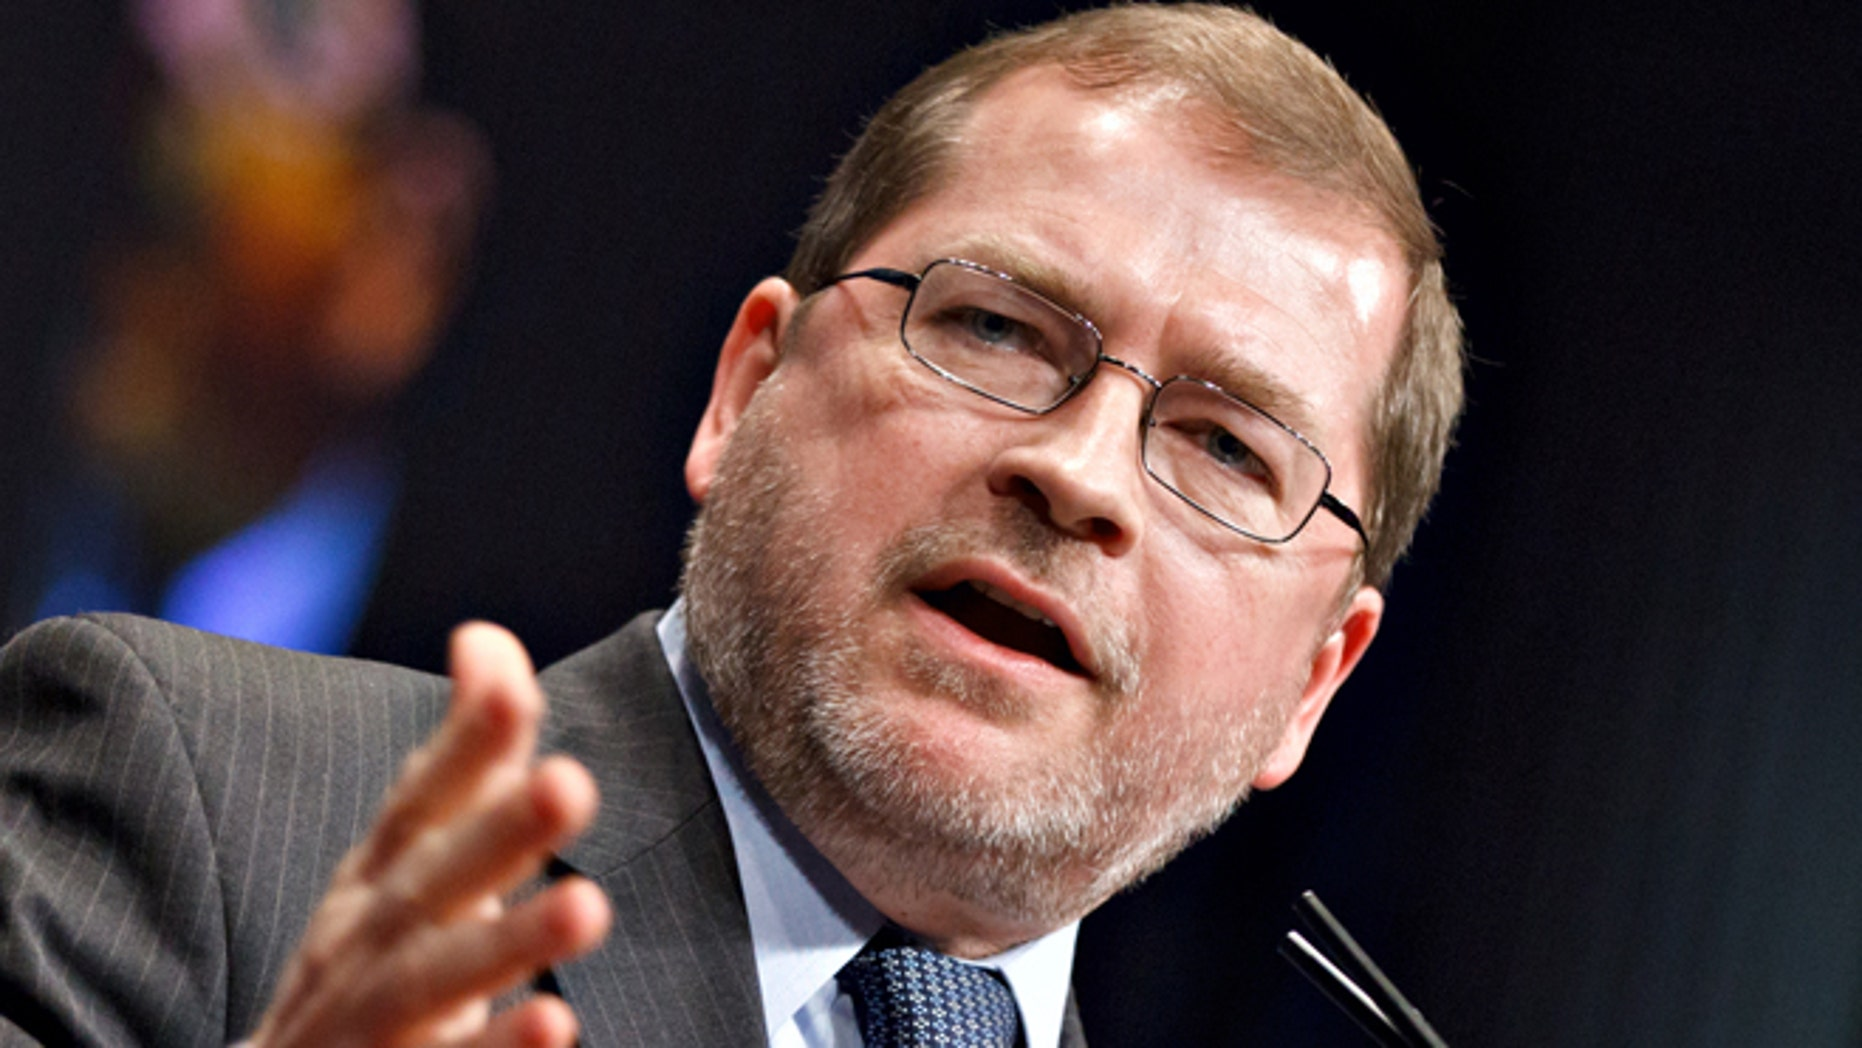 Grover Norquist, president of Americans for Tax Reform, has stepped down from his post on the NRA's board of directors amid a probe into his alleged ties to the Muslim Brotherhood.